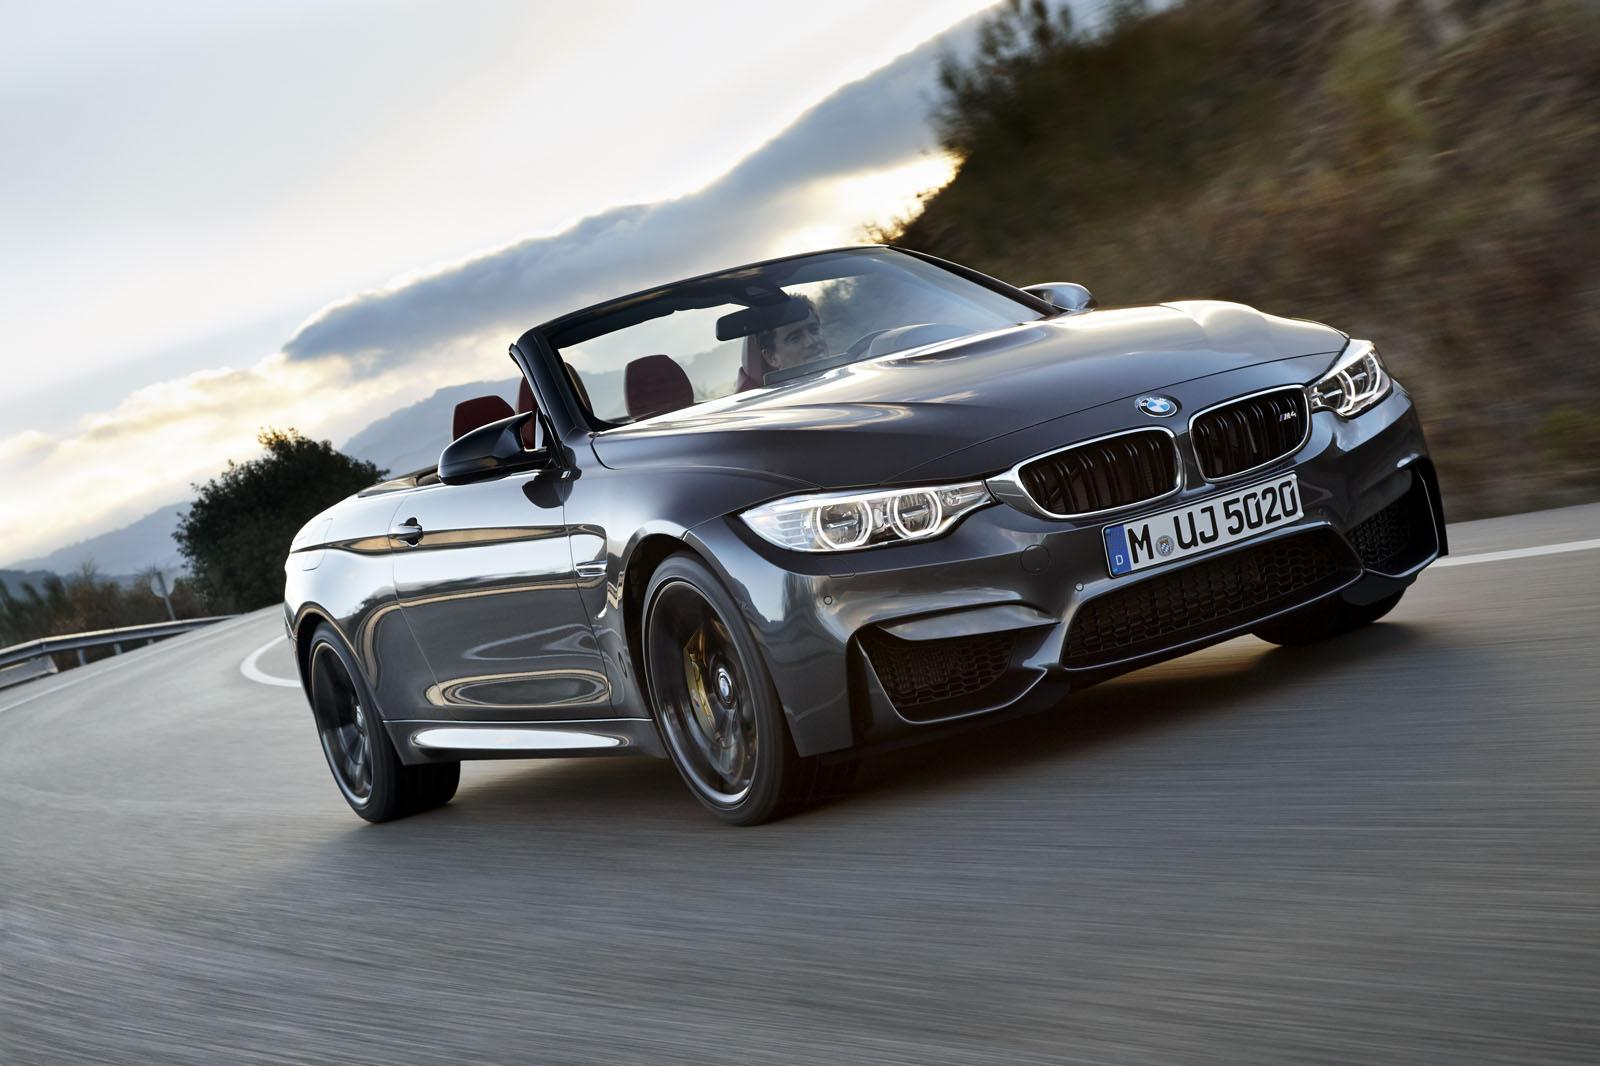 Bmw M4 Convertible Introduced With Hard Top And 425 Bhp